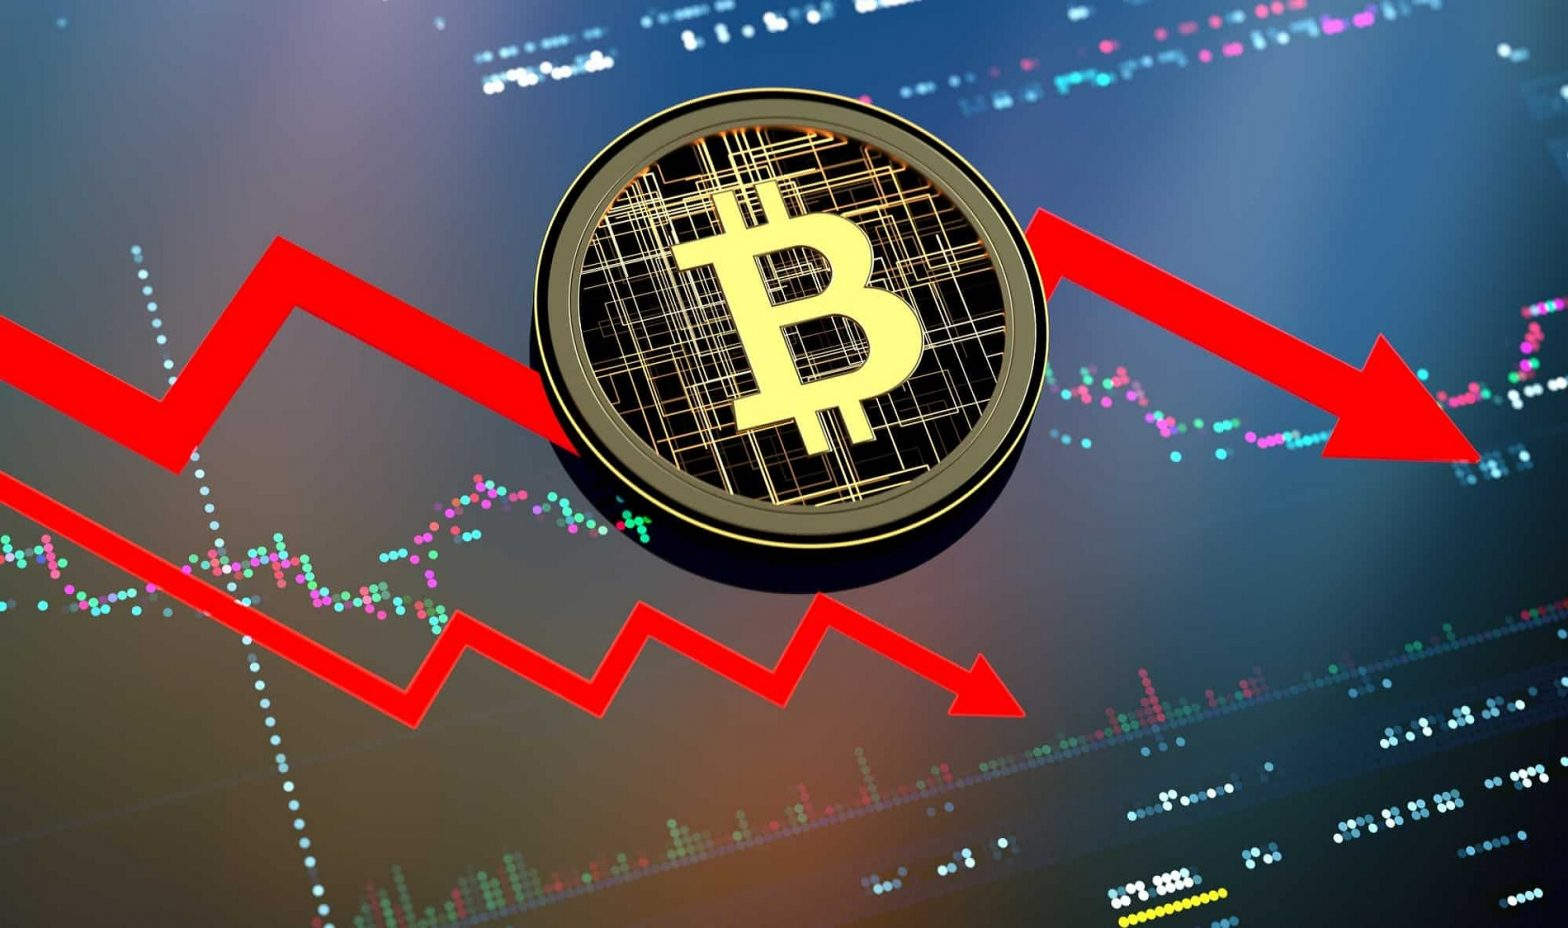 Fasten Your Seatbelts, Bitcoin is Down!